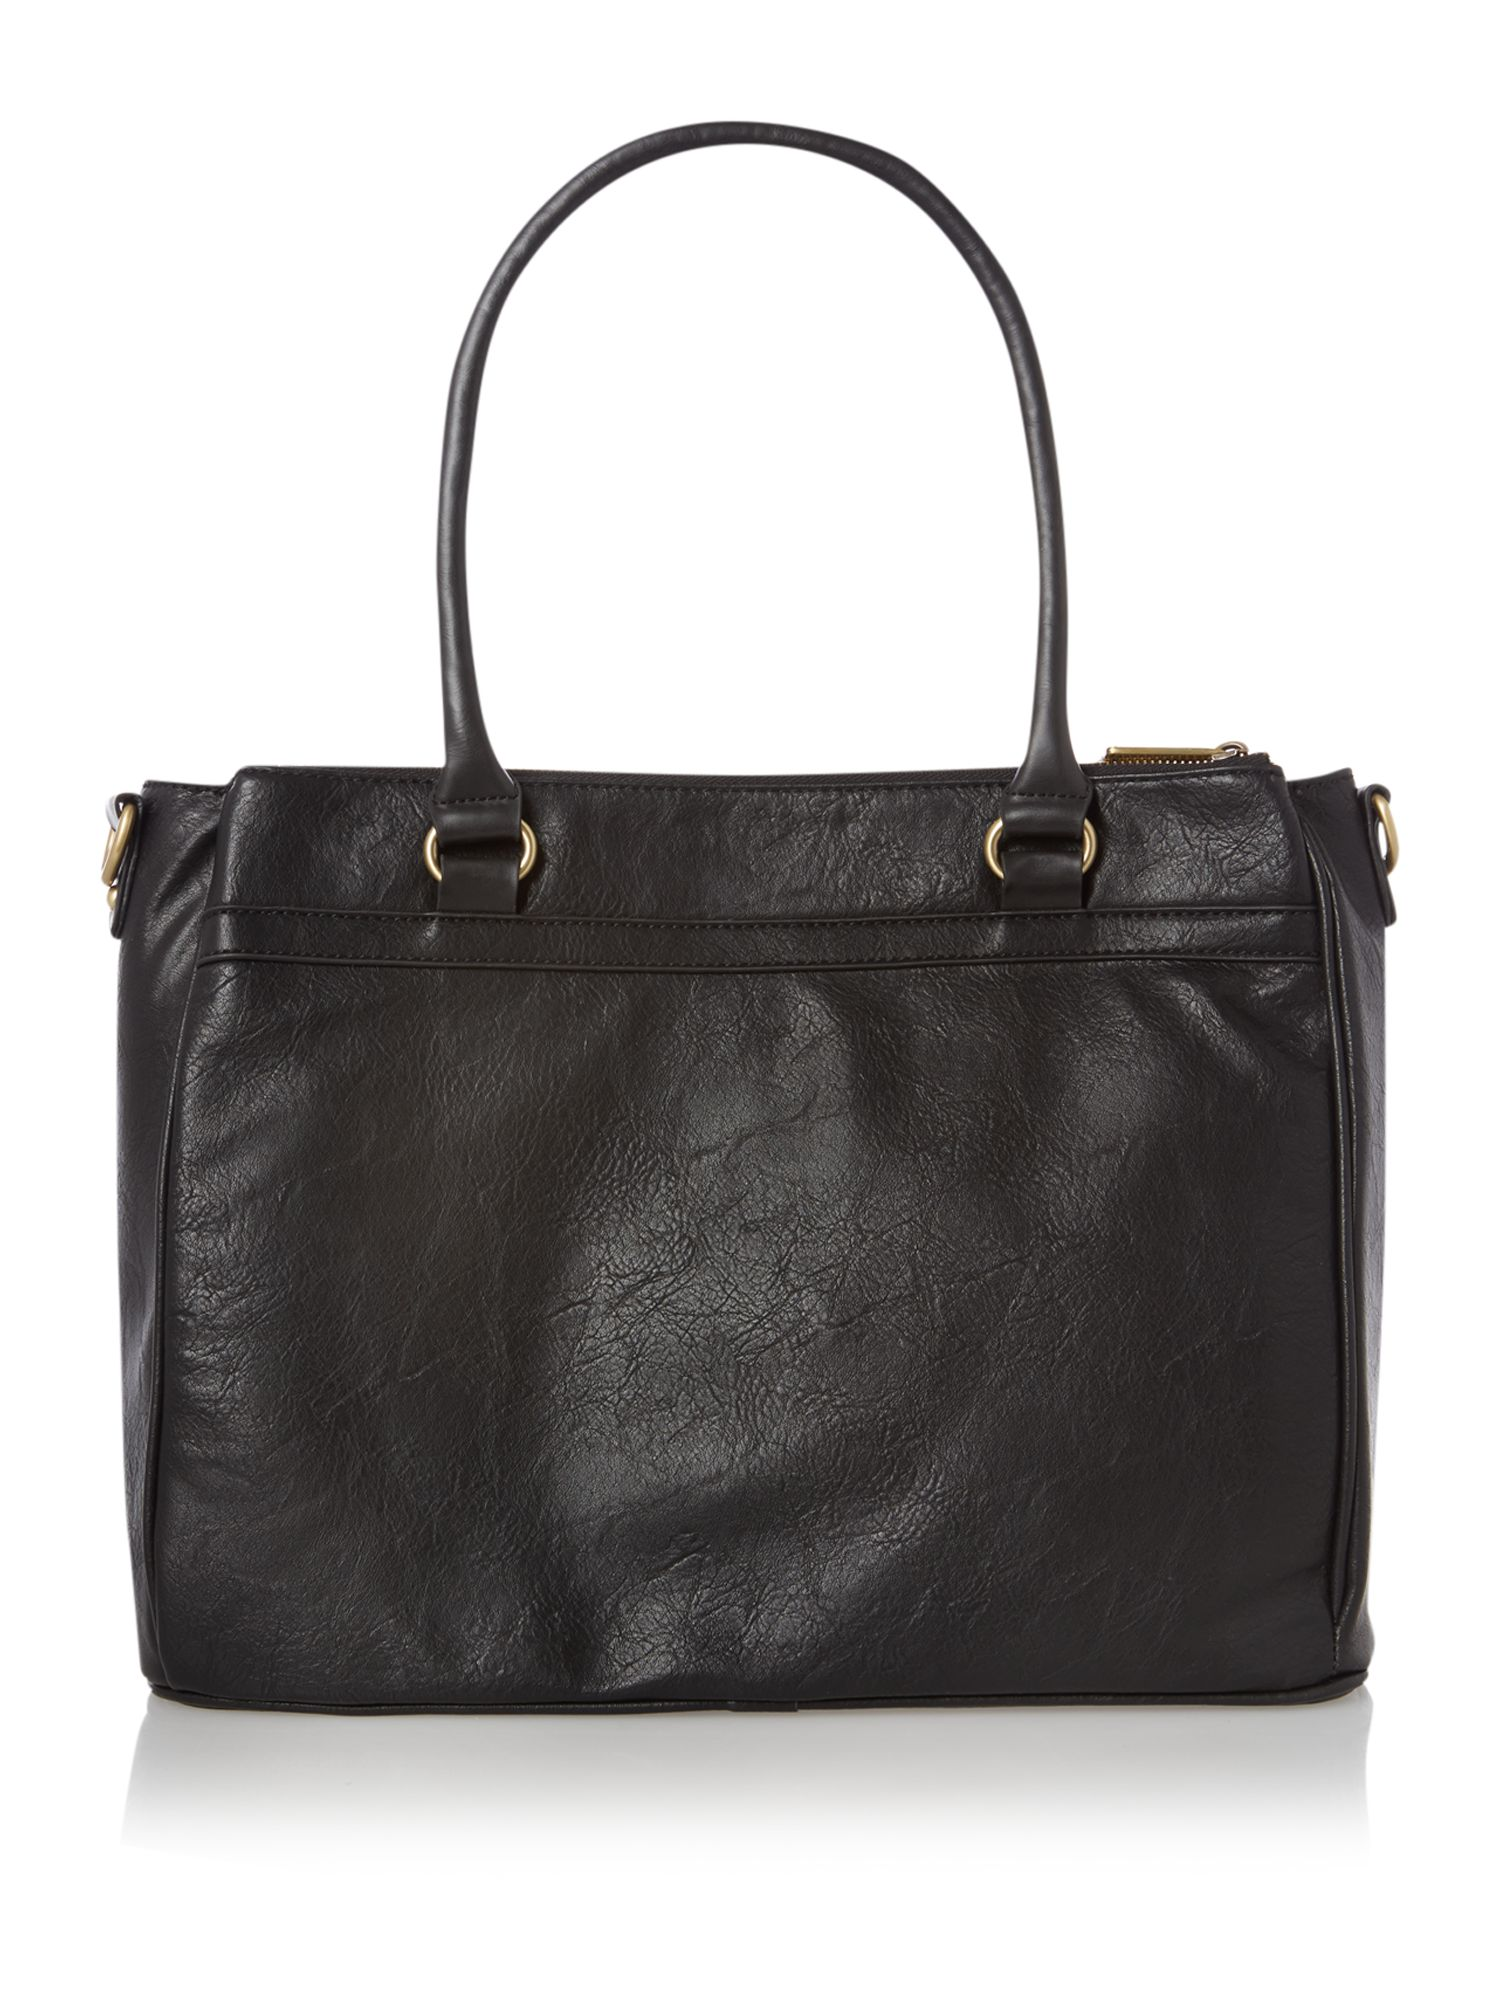 Sammy black tote bag